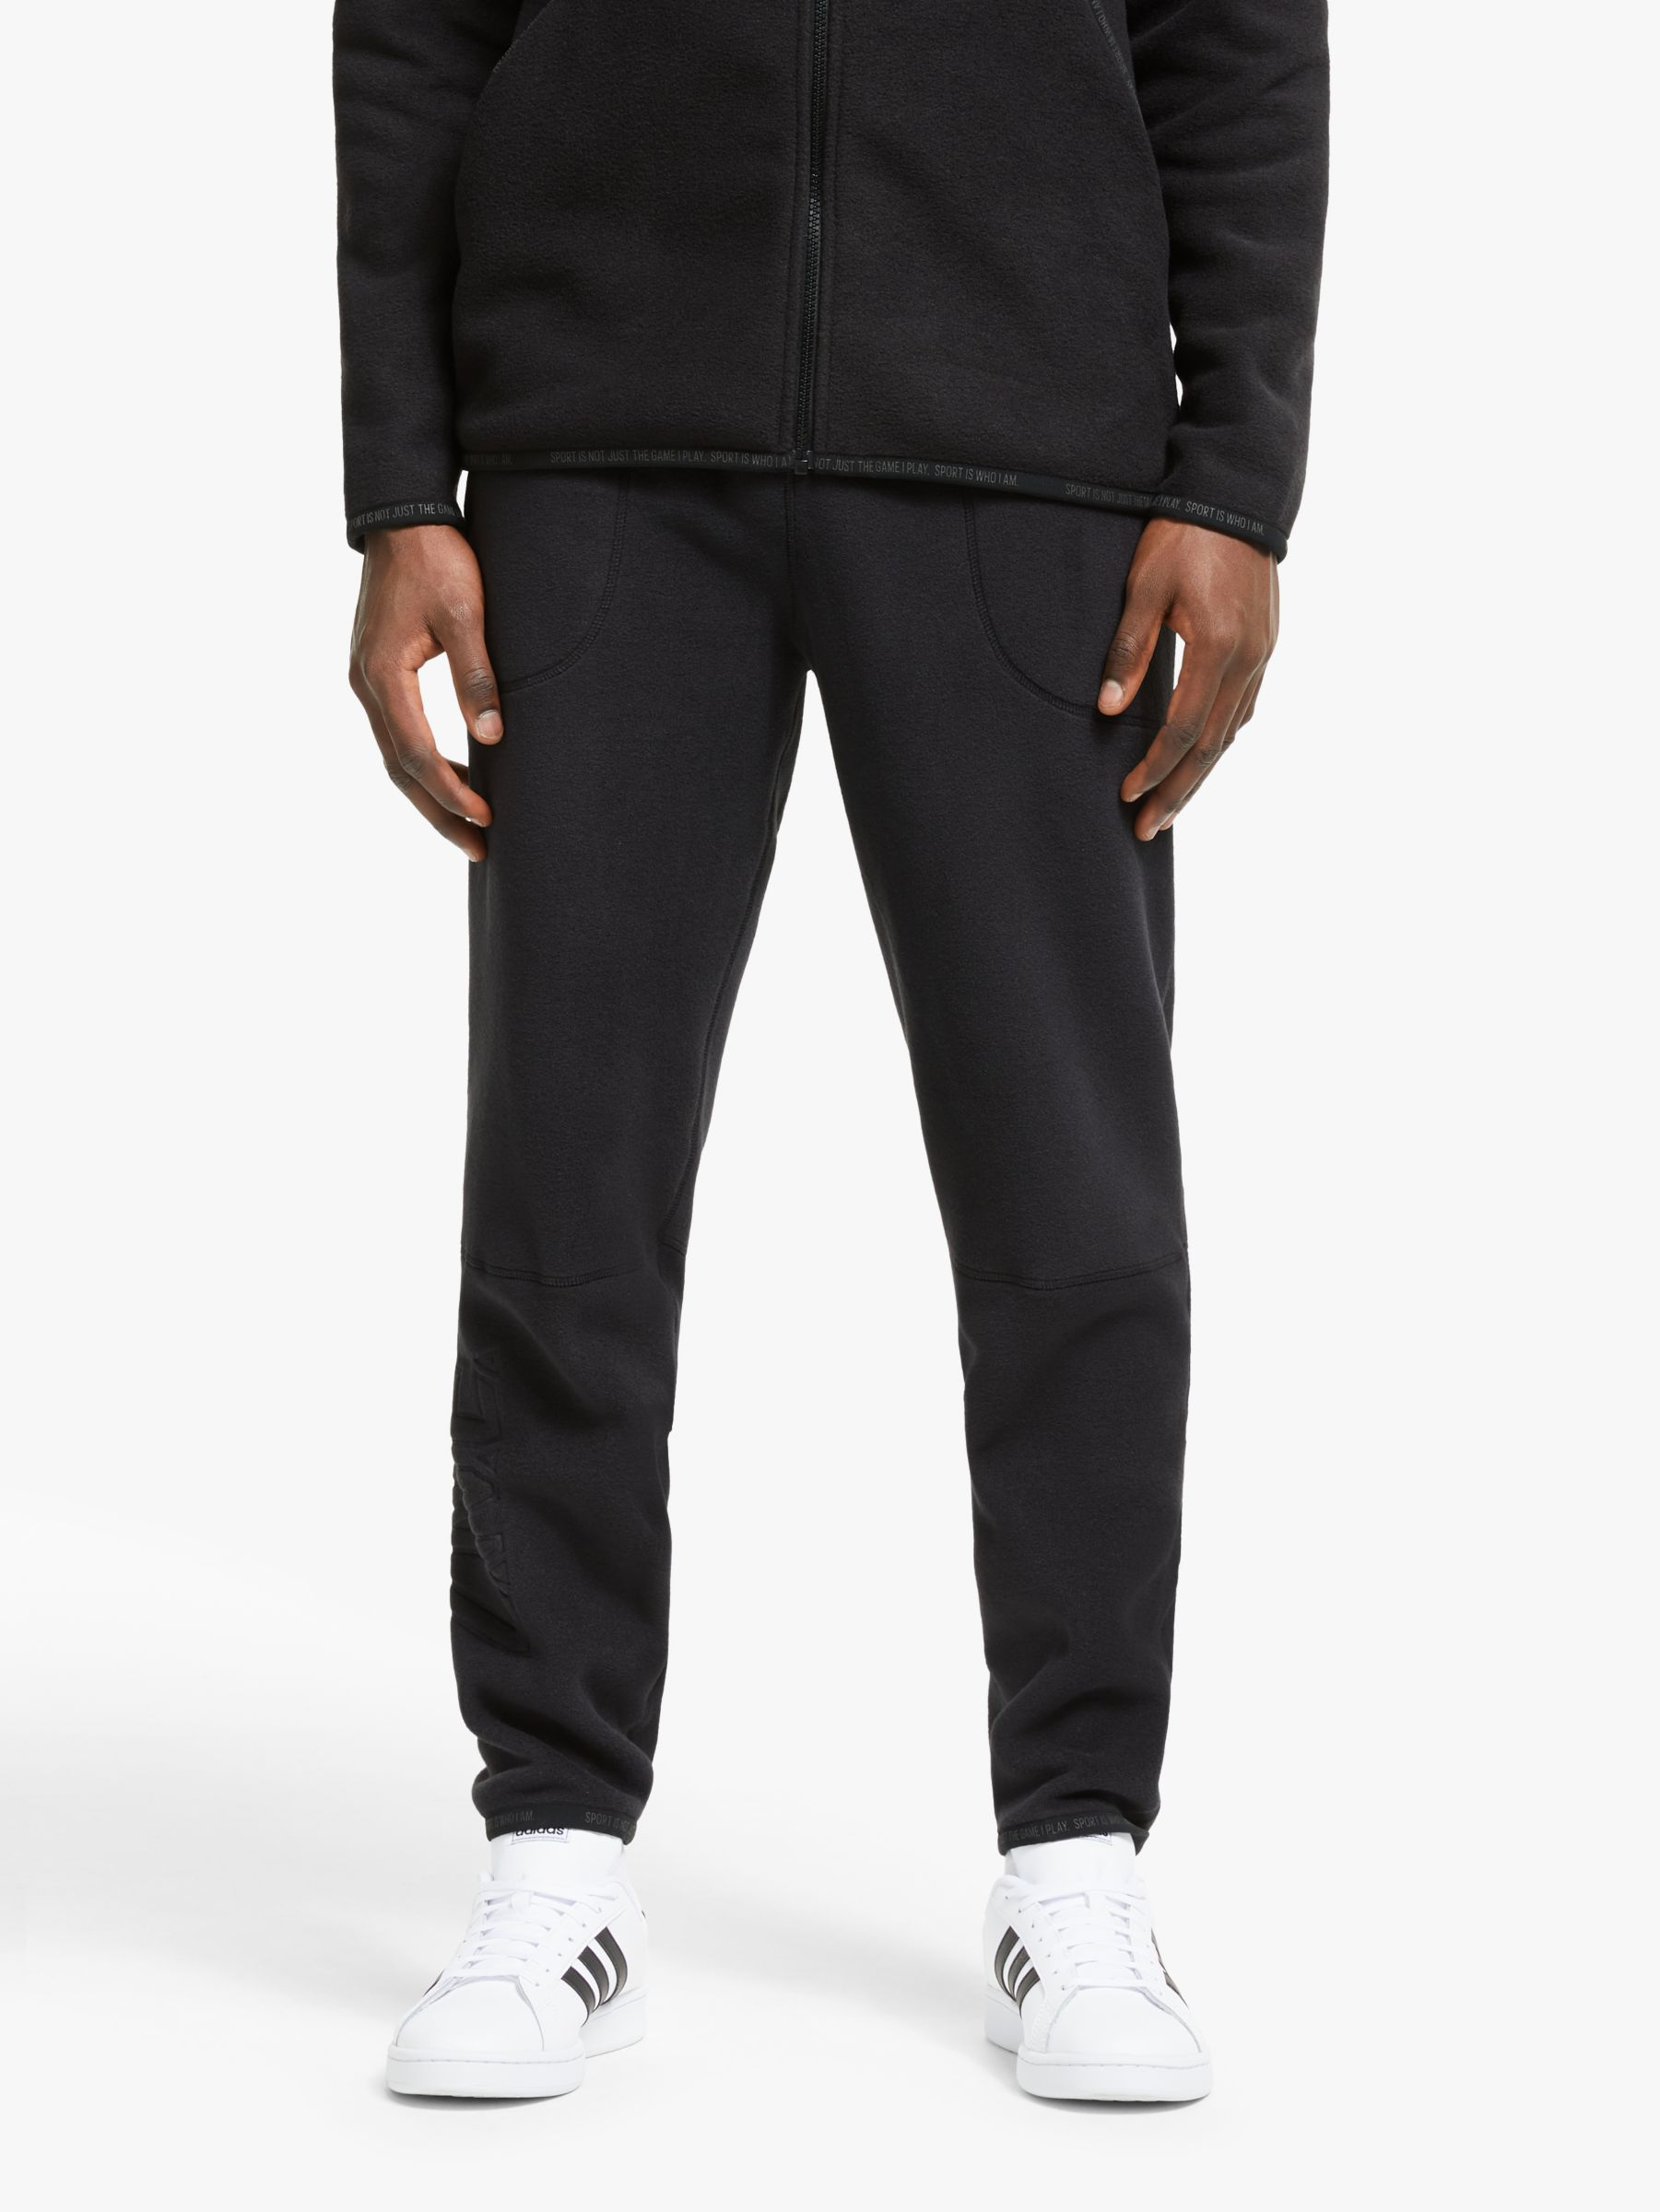 realce lluvia Línea de metal  adidas Z.N.E Tapered Tracksuit Bottoms, Black at John Lewis & Partners